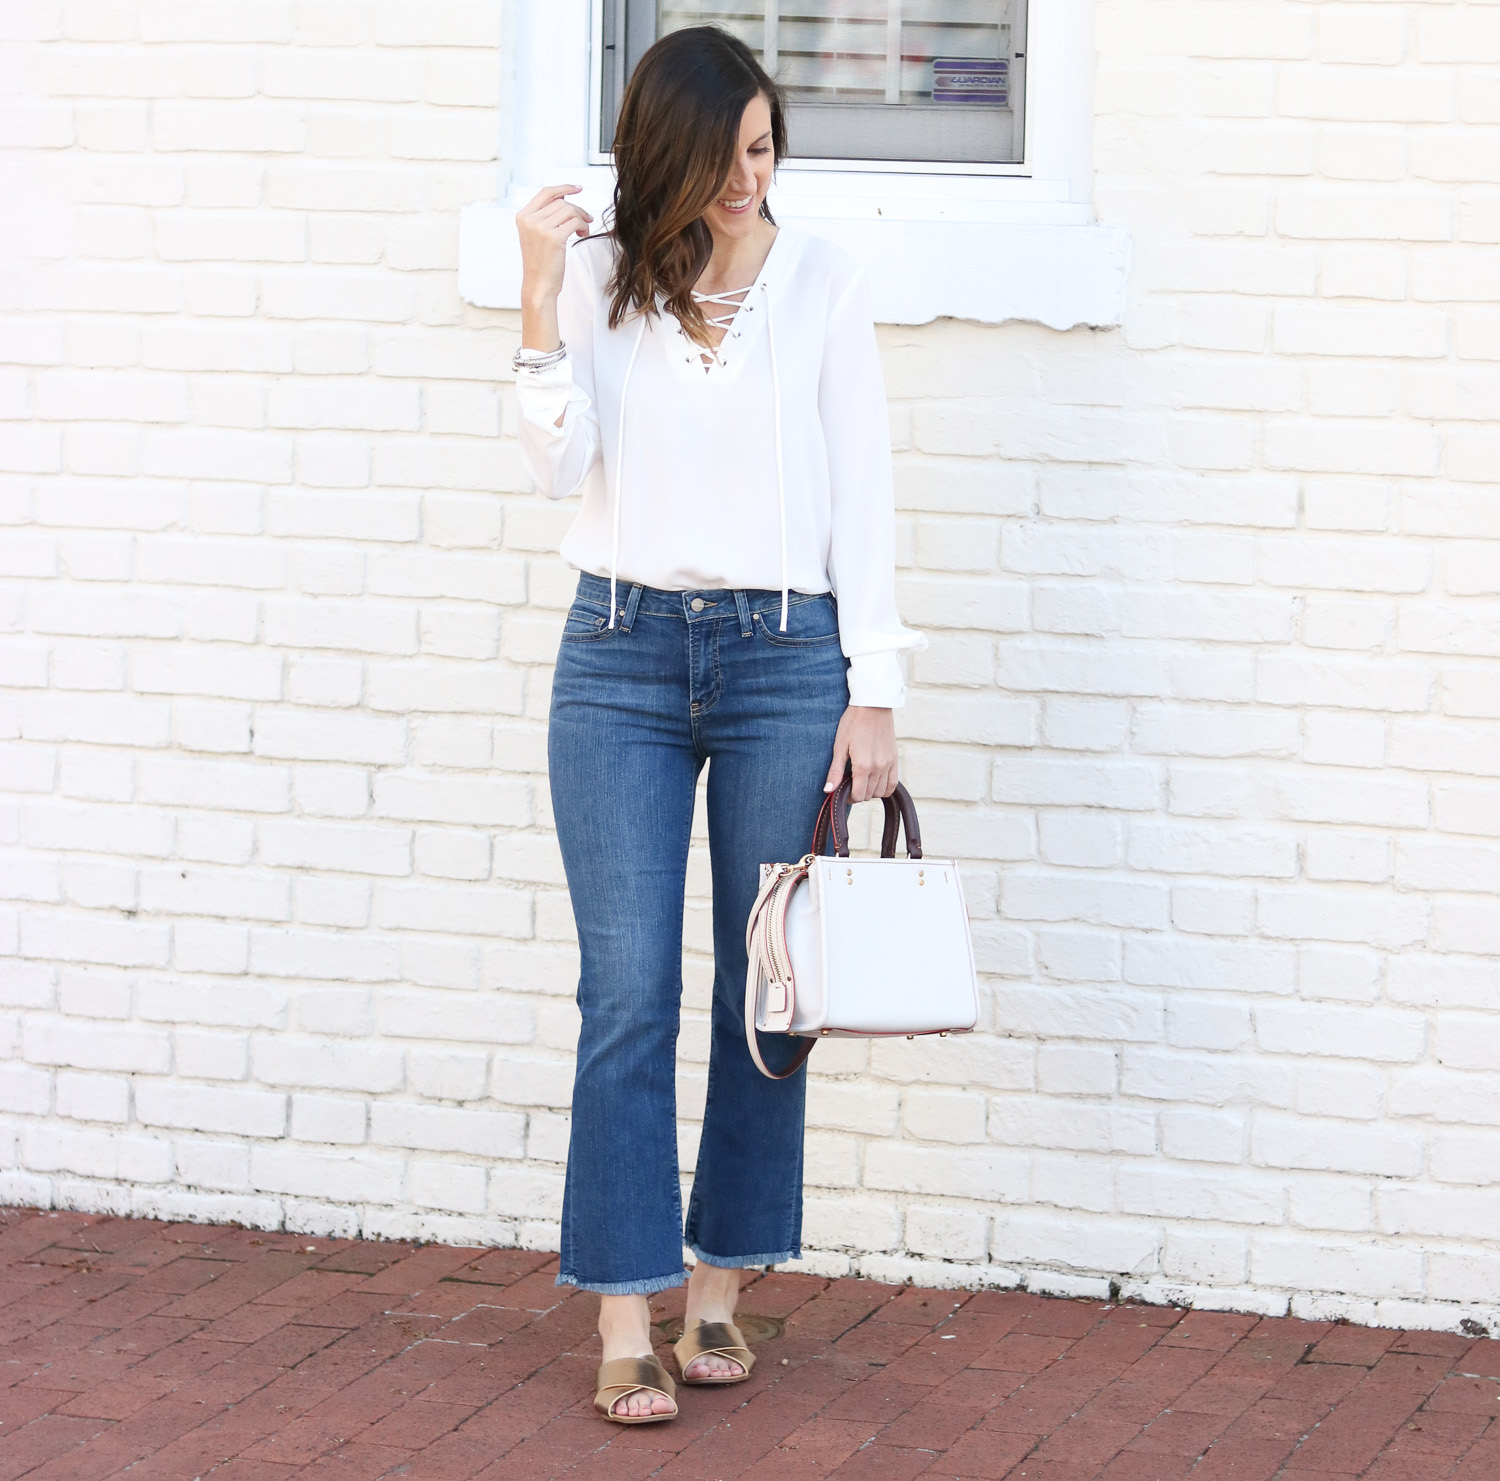 Cropped Flare Denim - Lace Up Top - Gold Slides @cobaltchronicle